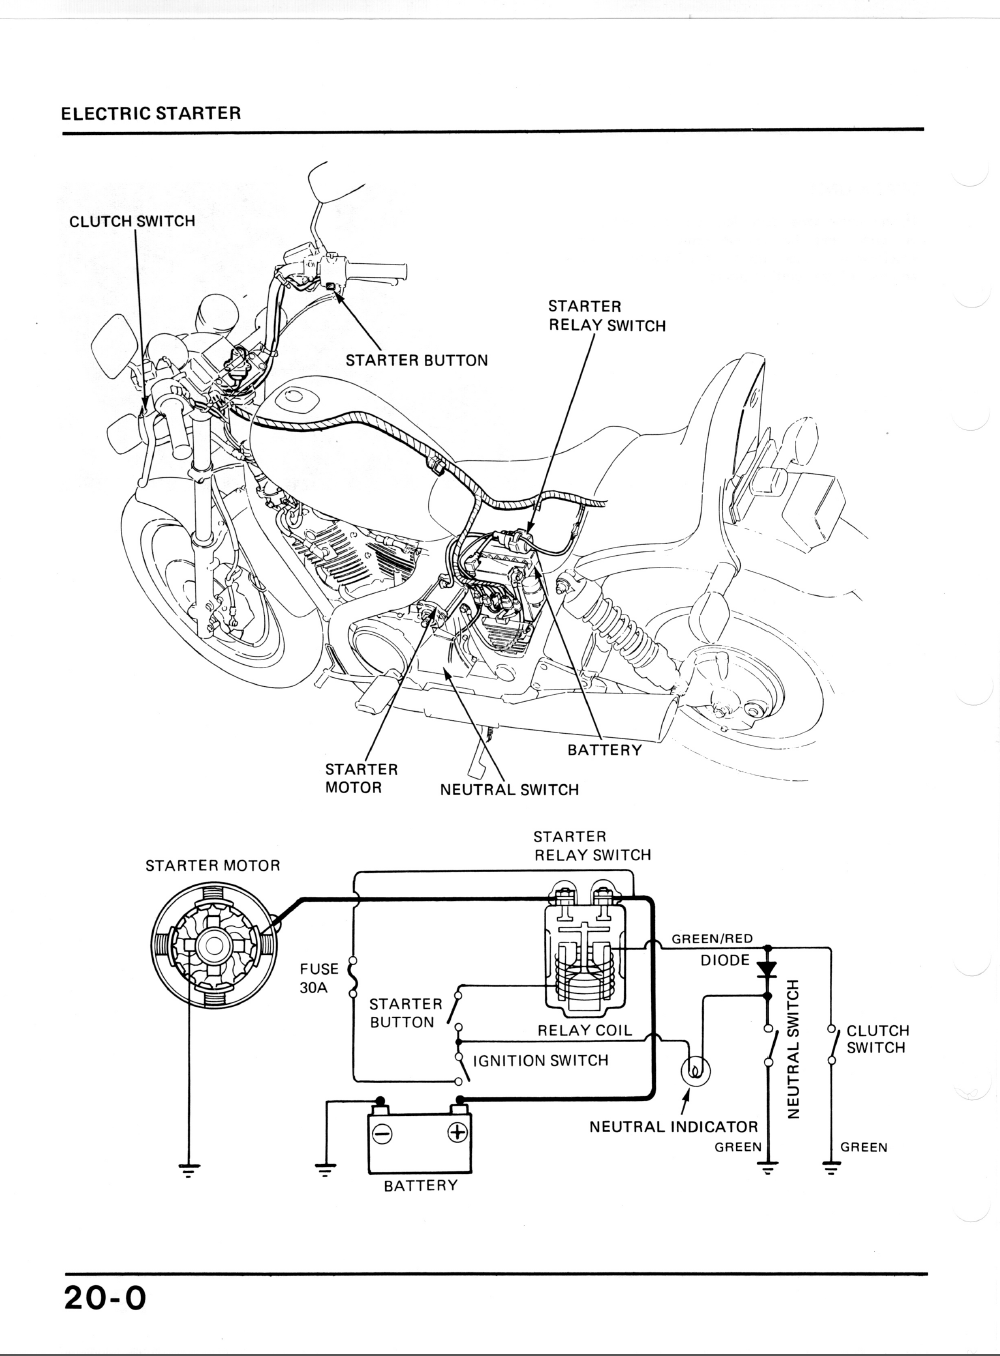 Honda Cdi Ignition Wiring Diagram Shadow Vt500 Motorcycle 44 1984 700 9266d1409799691 Electric Stater Chinese Atv Diagrams At